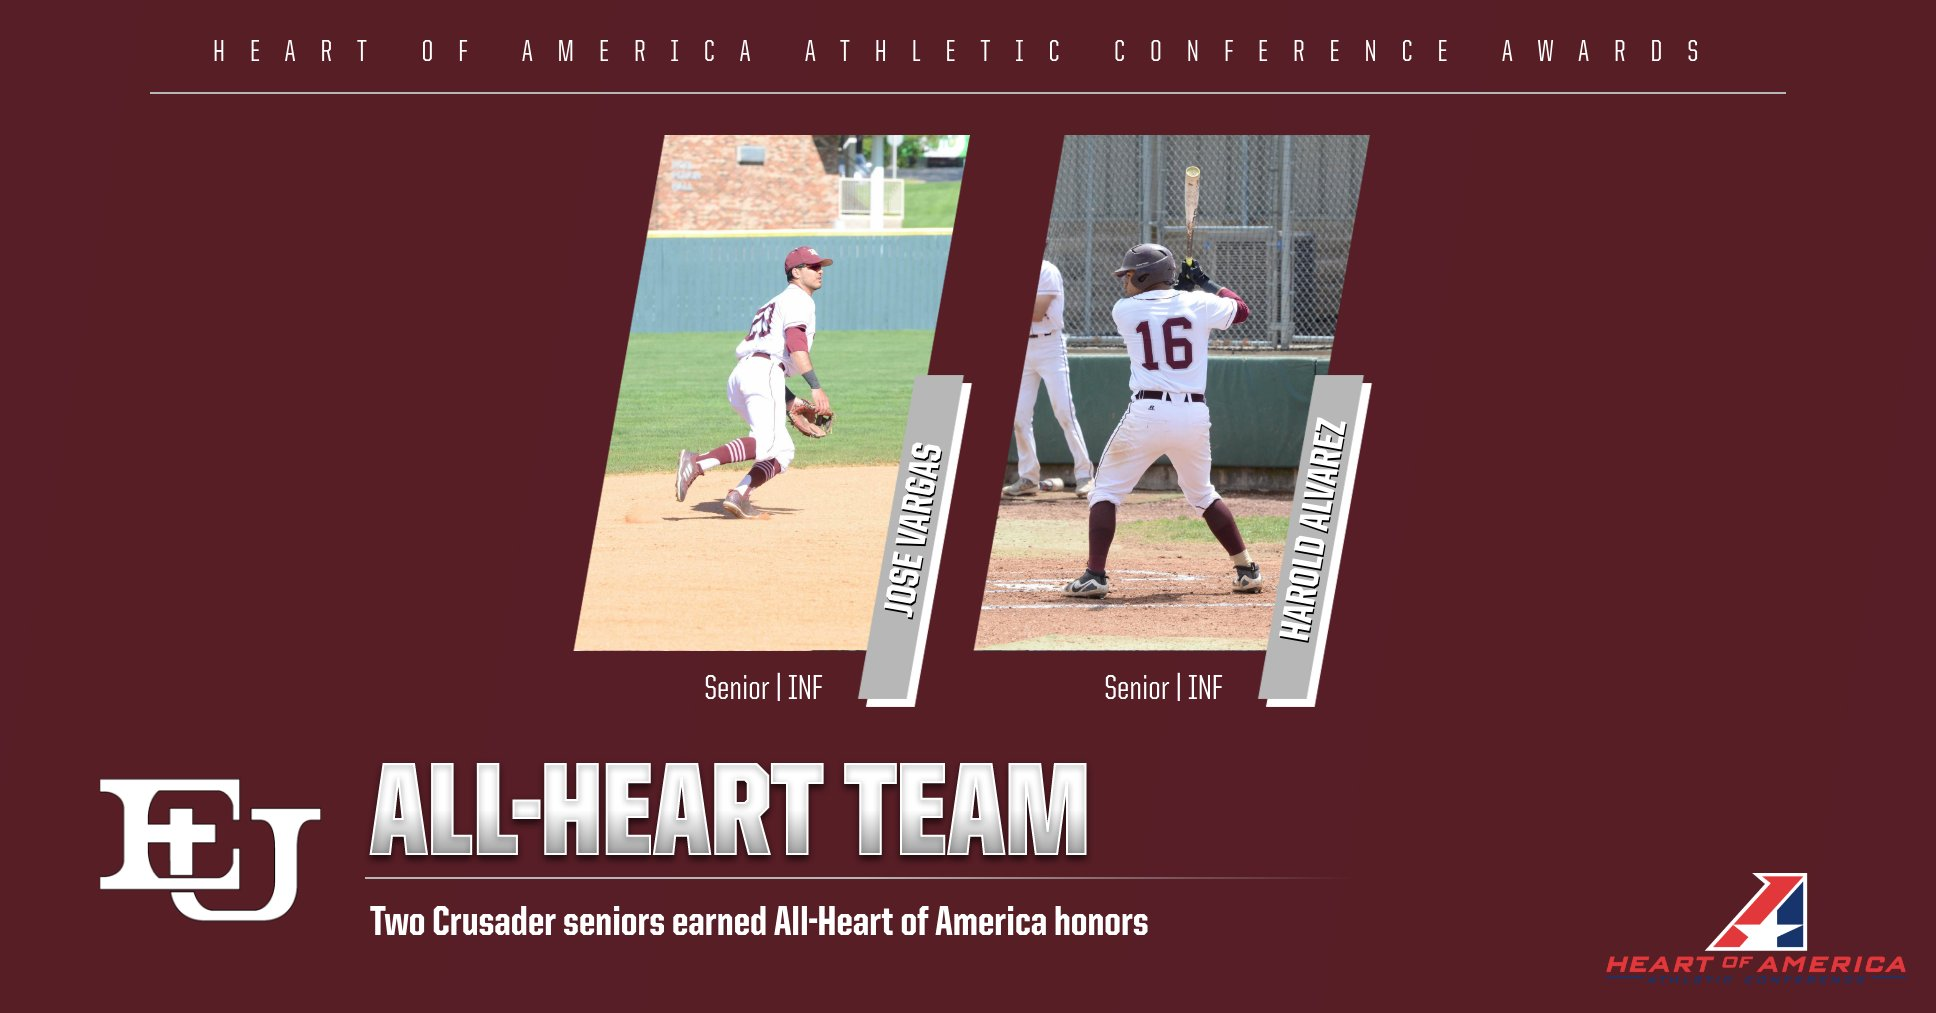 Vargas and Alvarez Earn All-Heart Honors